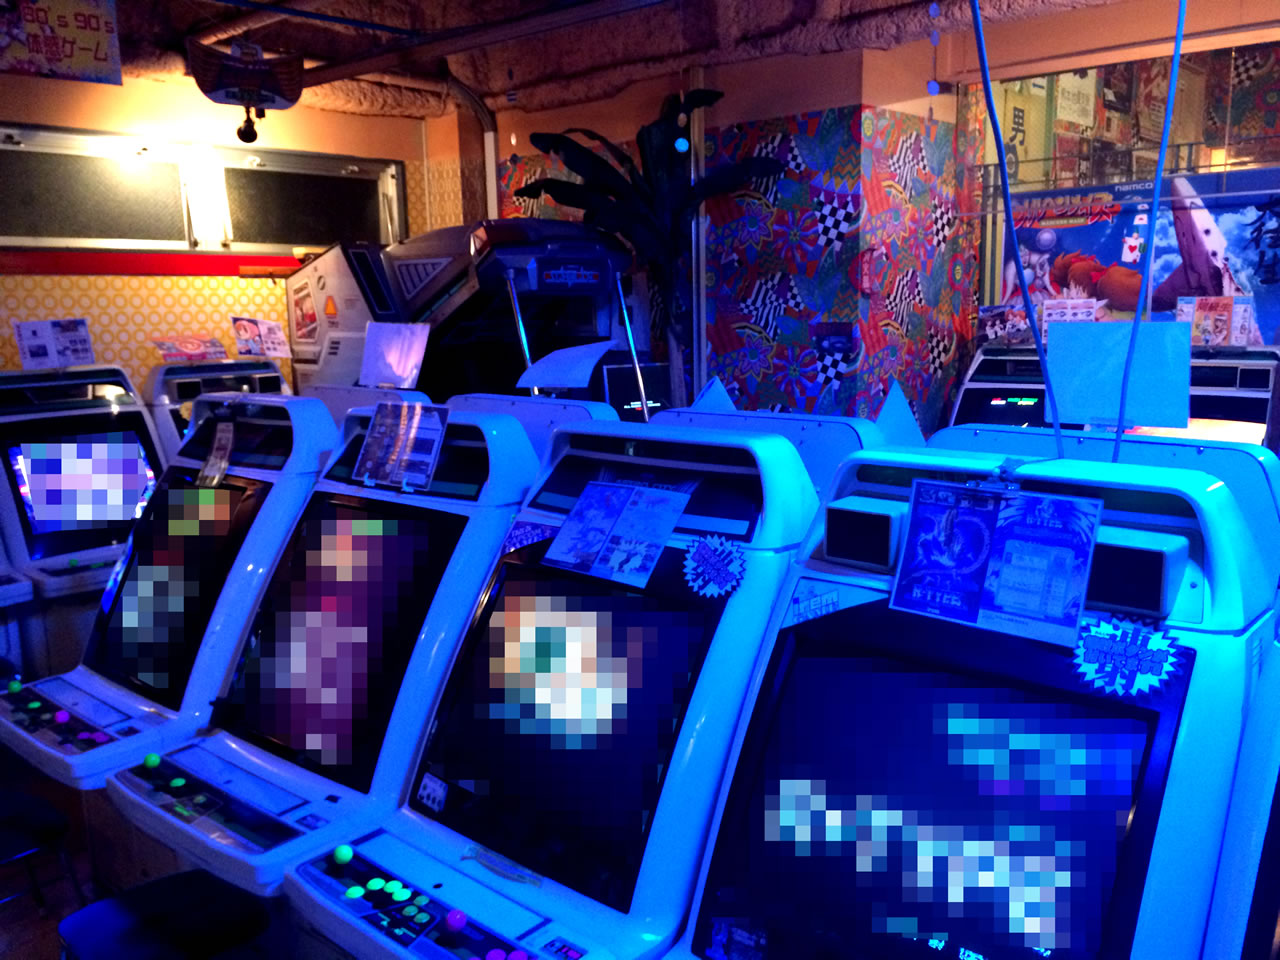 arcade-game-centers-are-becoming-museum-sp-001-005